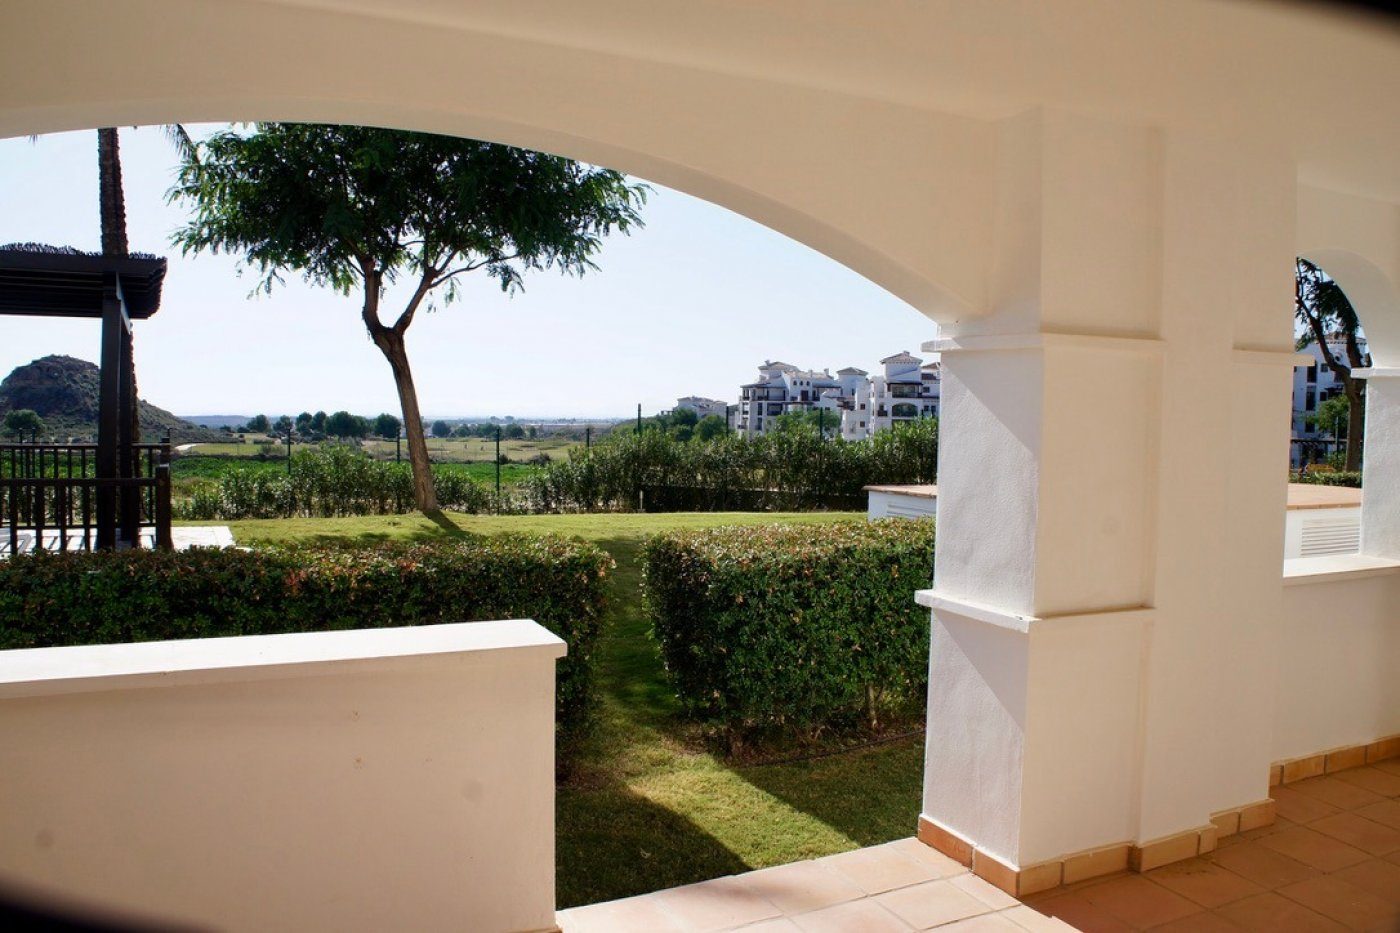 Apartment ref 3265-02925 for sale in El Valle Golf Resort Spain - Quality Homes Costa Cálida